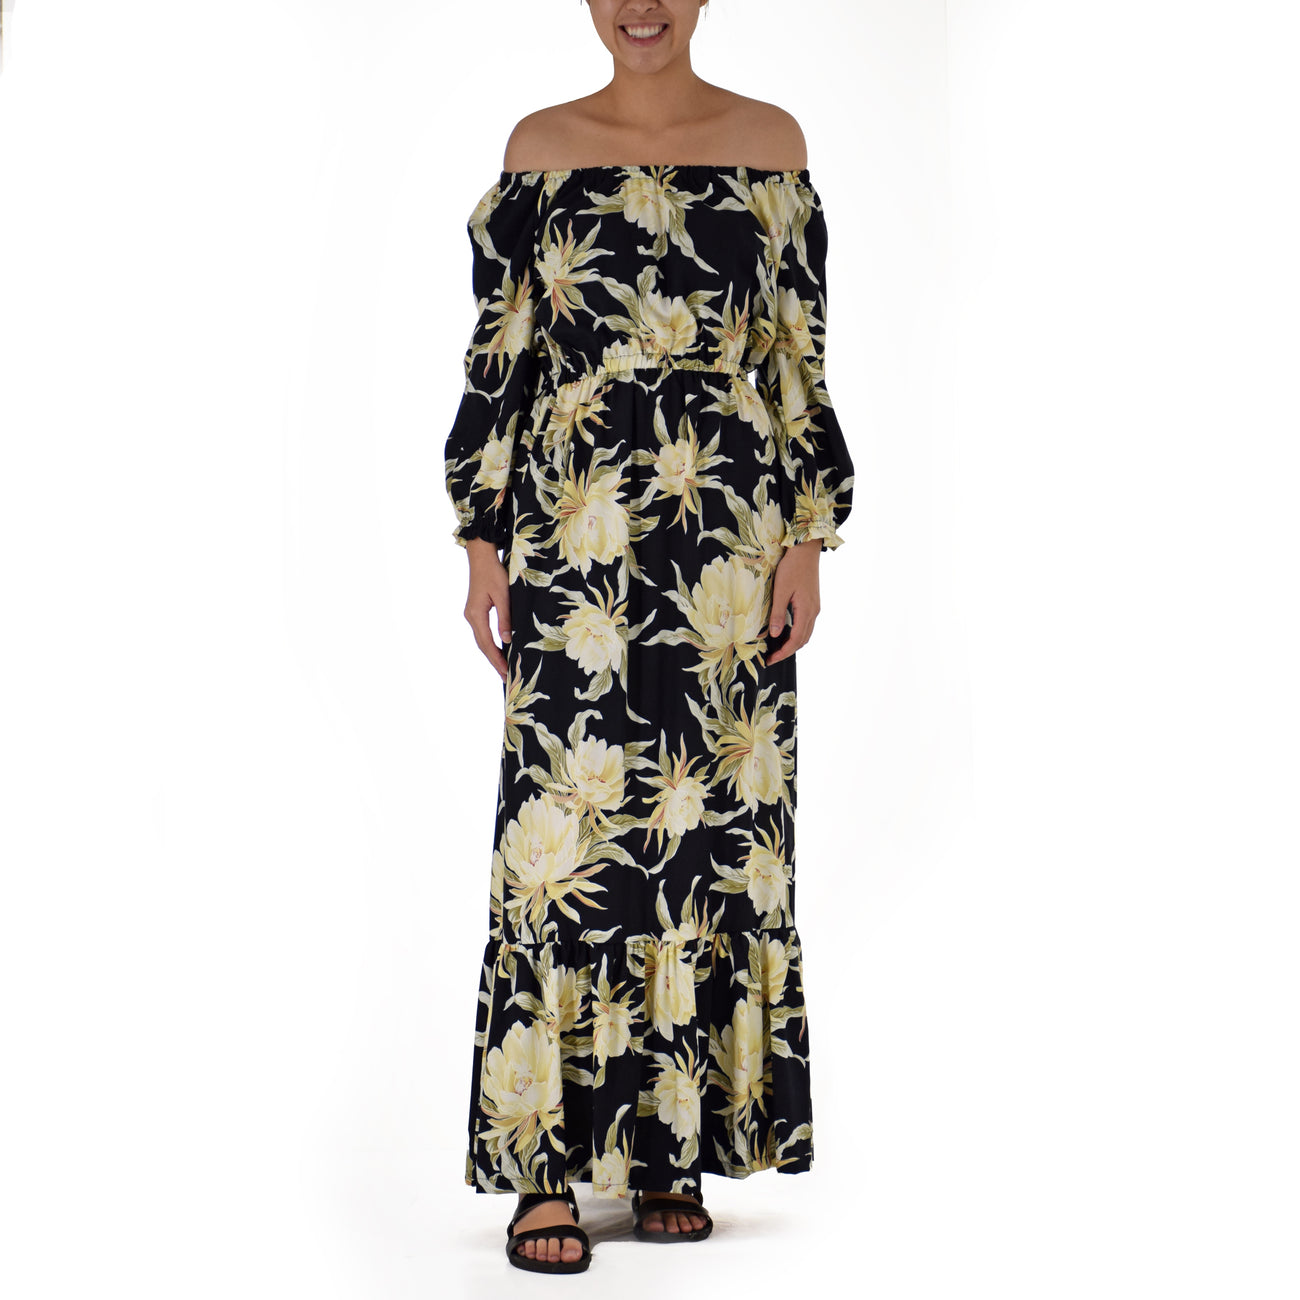 VINTAGE CERES LONG MU'U MU'U WITH RUFFLE & POCKETS